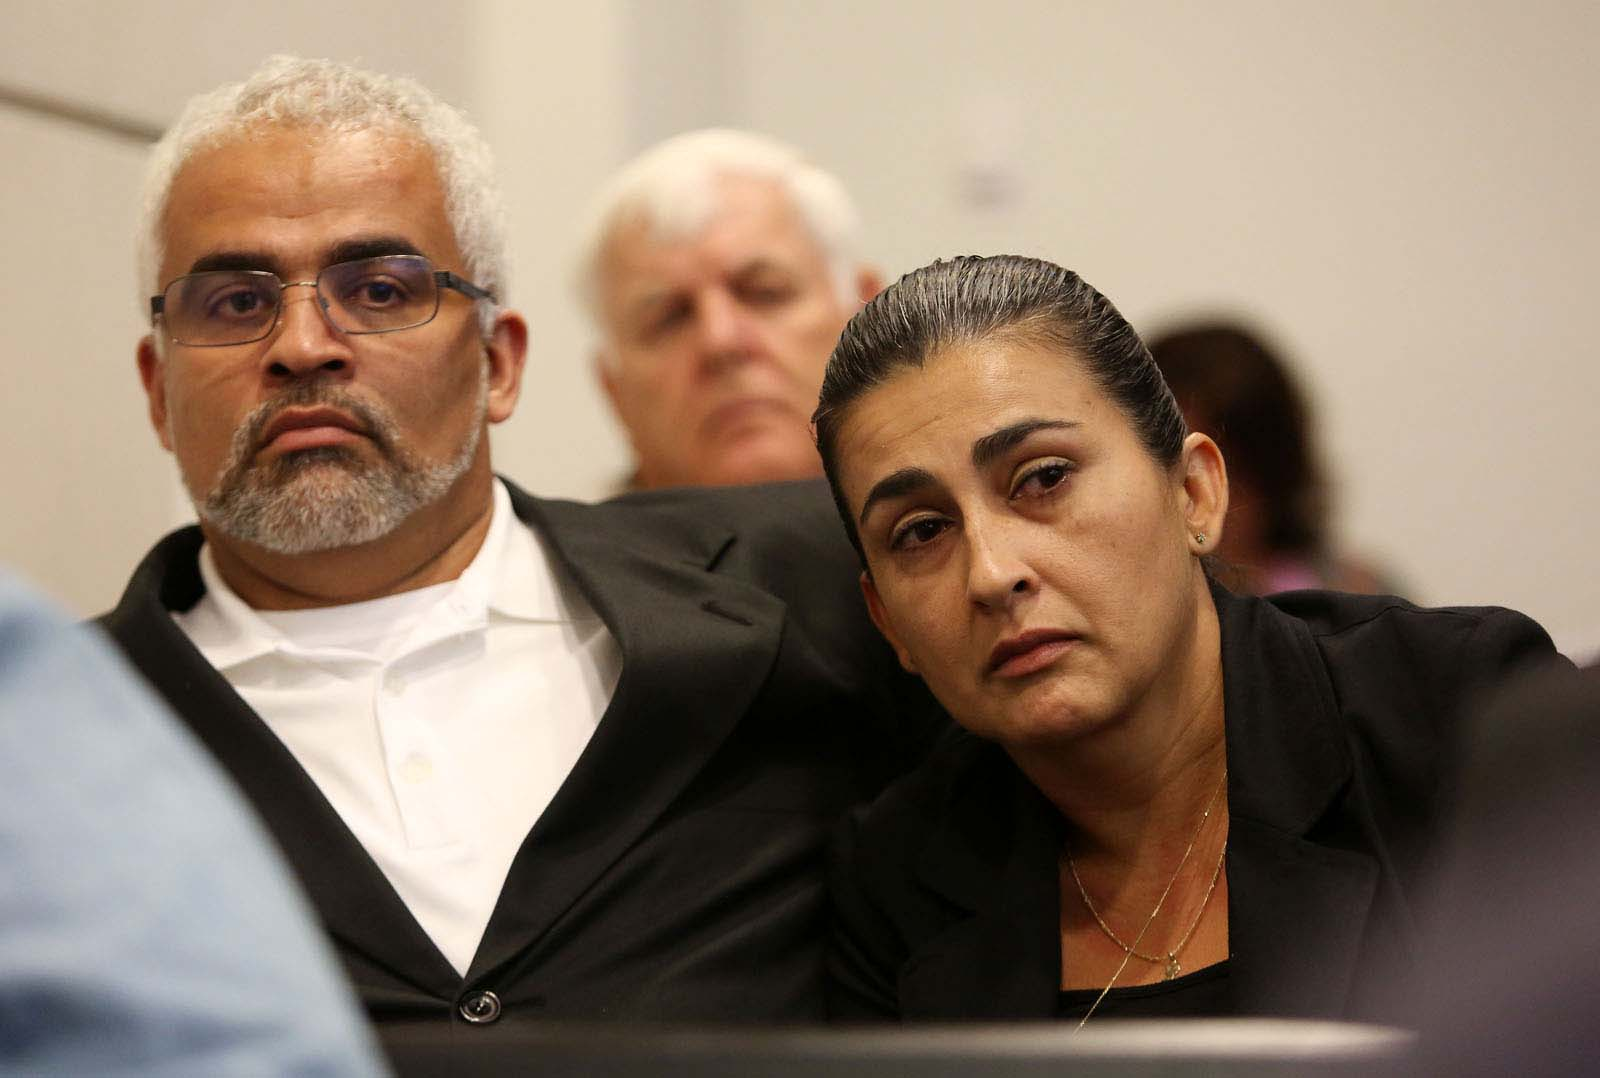 Carlos and Claudia Aguilar, the parents of slain University of Florida student Christian Aguilar, listen to defendant Pedro Bravo testify during Bravo's murder trial in courtroom 1B of the Alachua County Criminal Justice Center Thursday, August 14, 2014.  Bravo is accused of killing University of Florida student Christian Aguilar.  (Doug Finger/The Gainesville Sun/Pool)